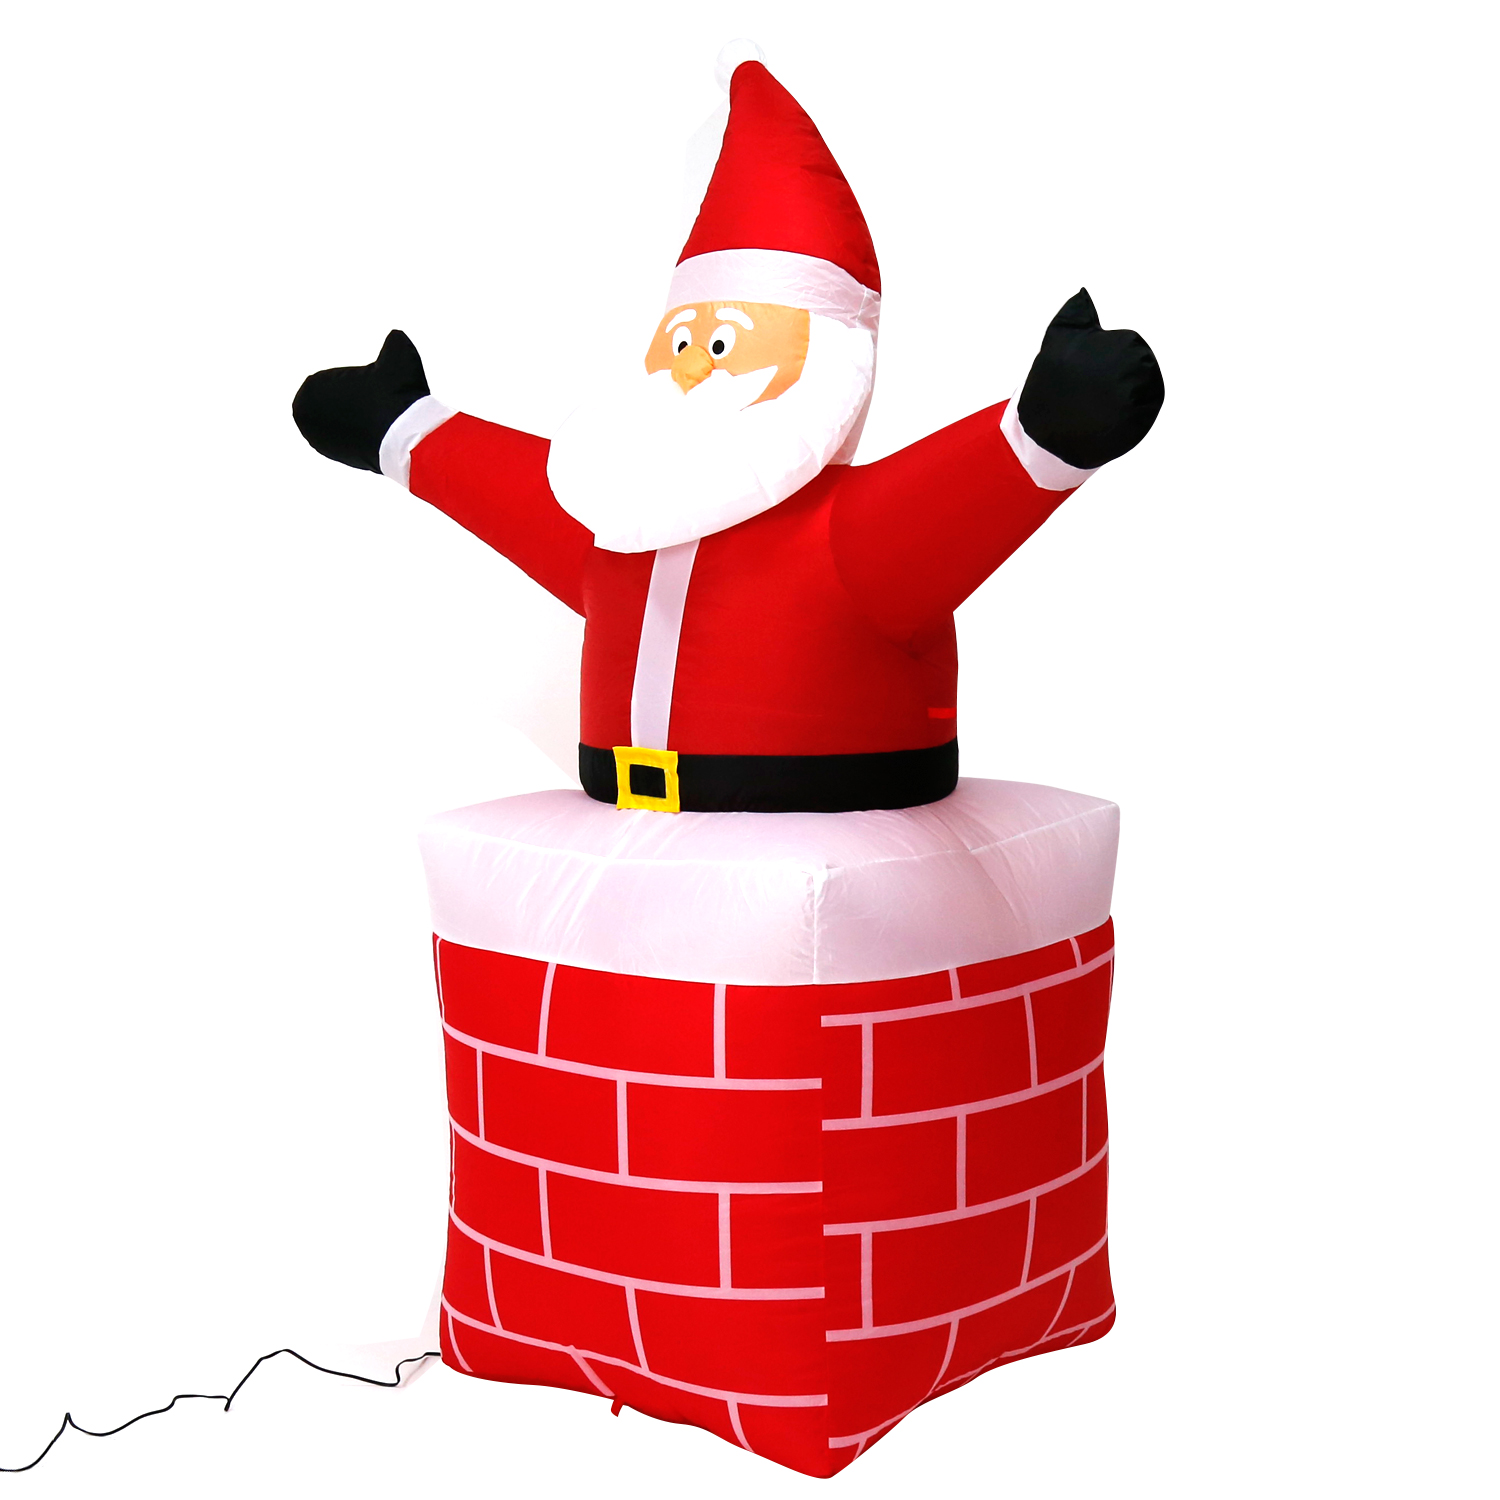 56 Ft Inflatable Chimney Santa Clause Holiday Outdoor Garden Decor